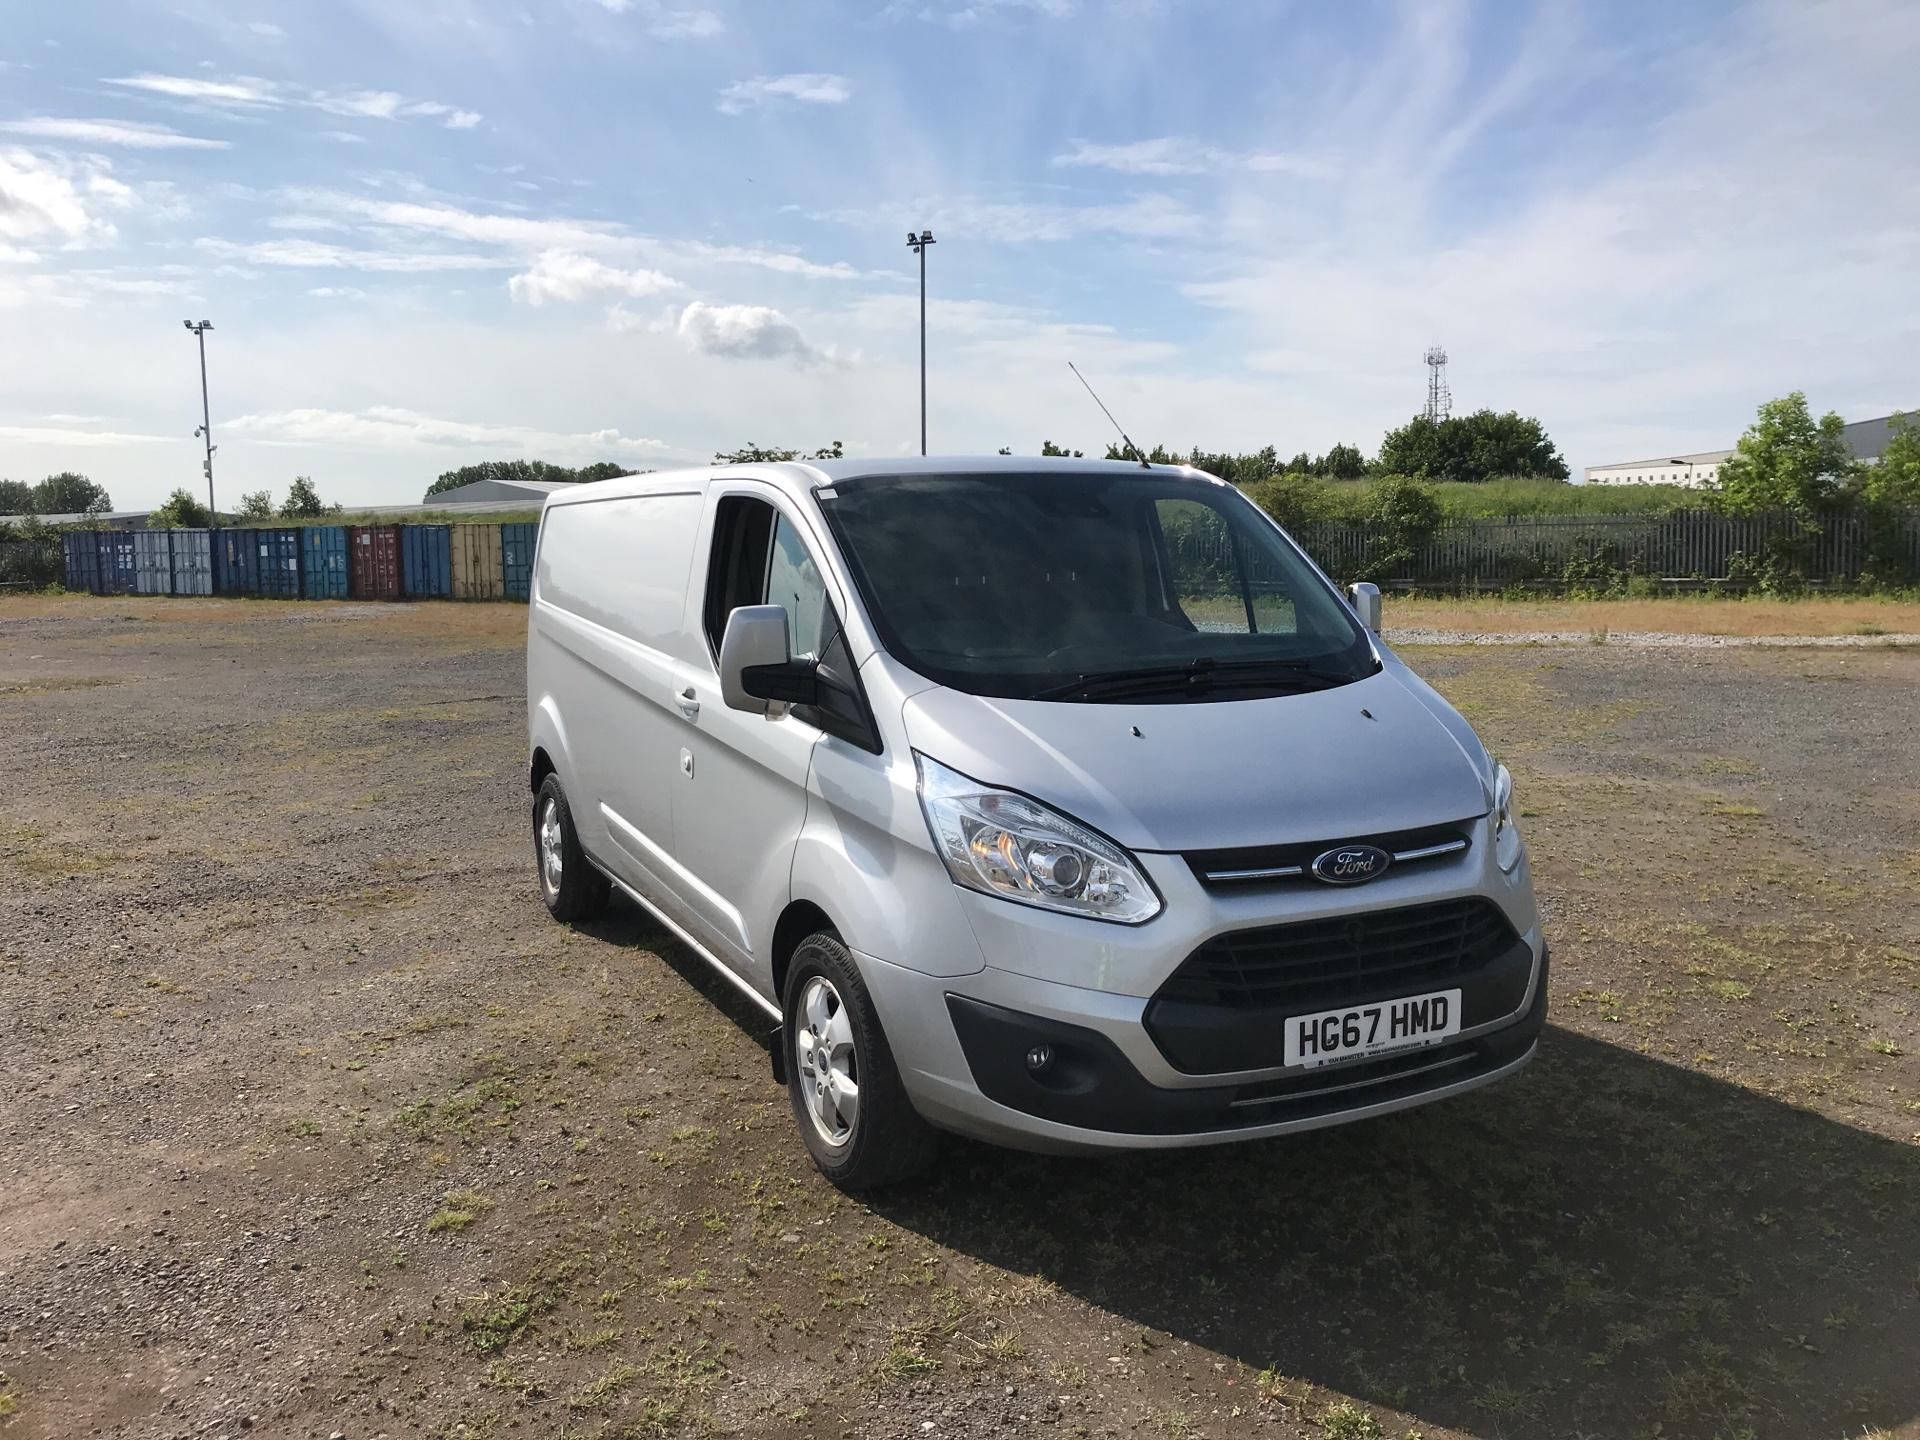 2017 Ford Transit Custom  290 L2 DIESEL FWD 2.0 TDCI 130PS LOW  ROOF LIMITED VAN EURO 6 (HG67HMD)